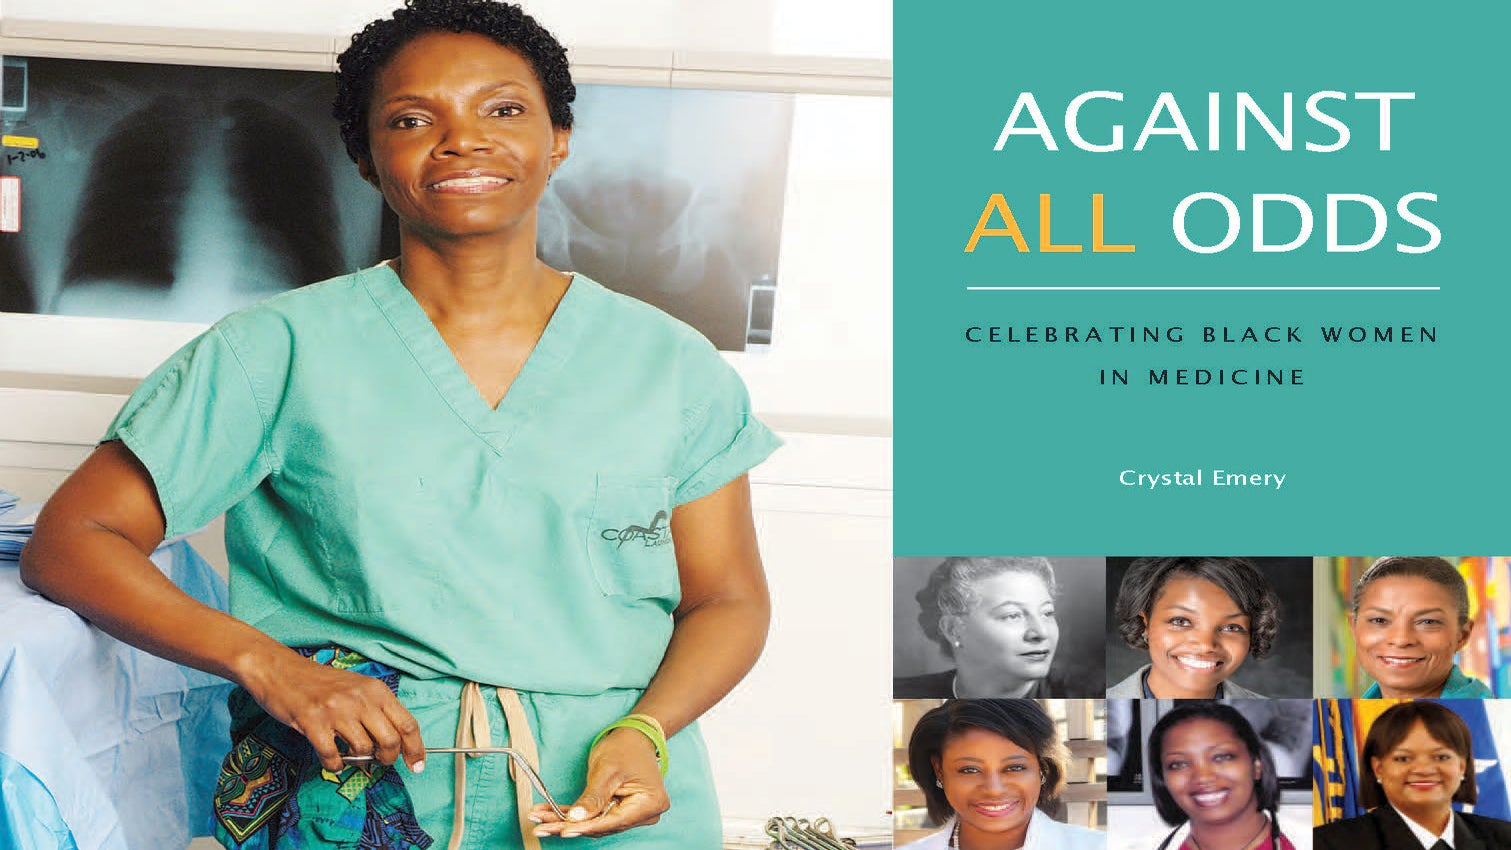 First Look: New Documentary Focuses on Black Women in Medicine